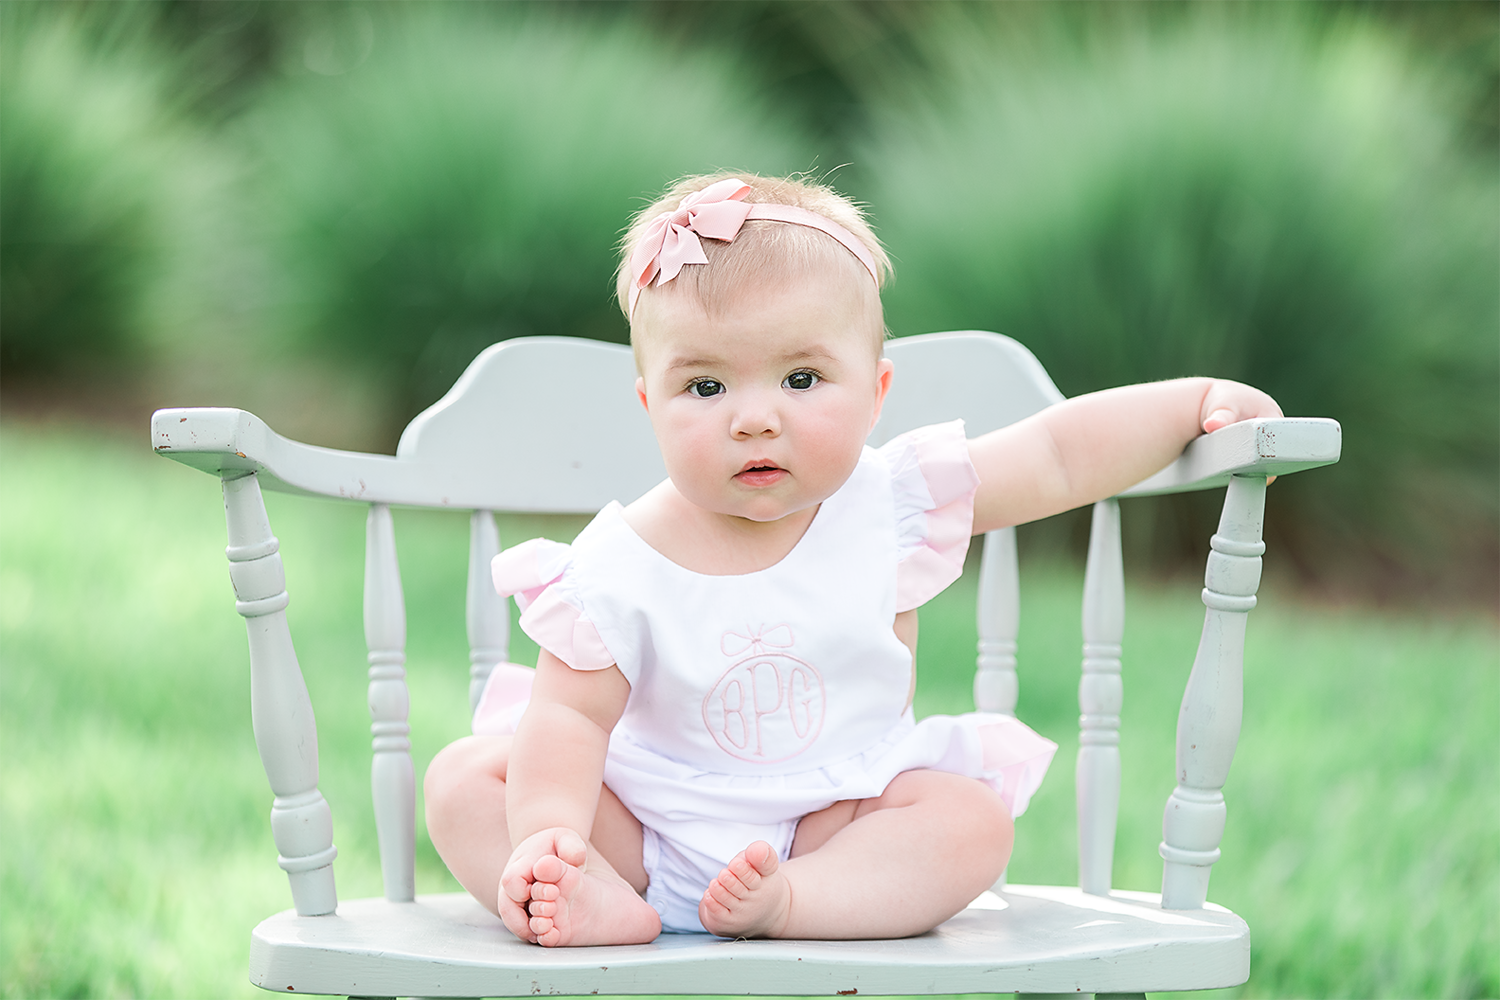 baby girl picture ideas for 6 months birthday in greenery